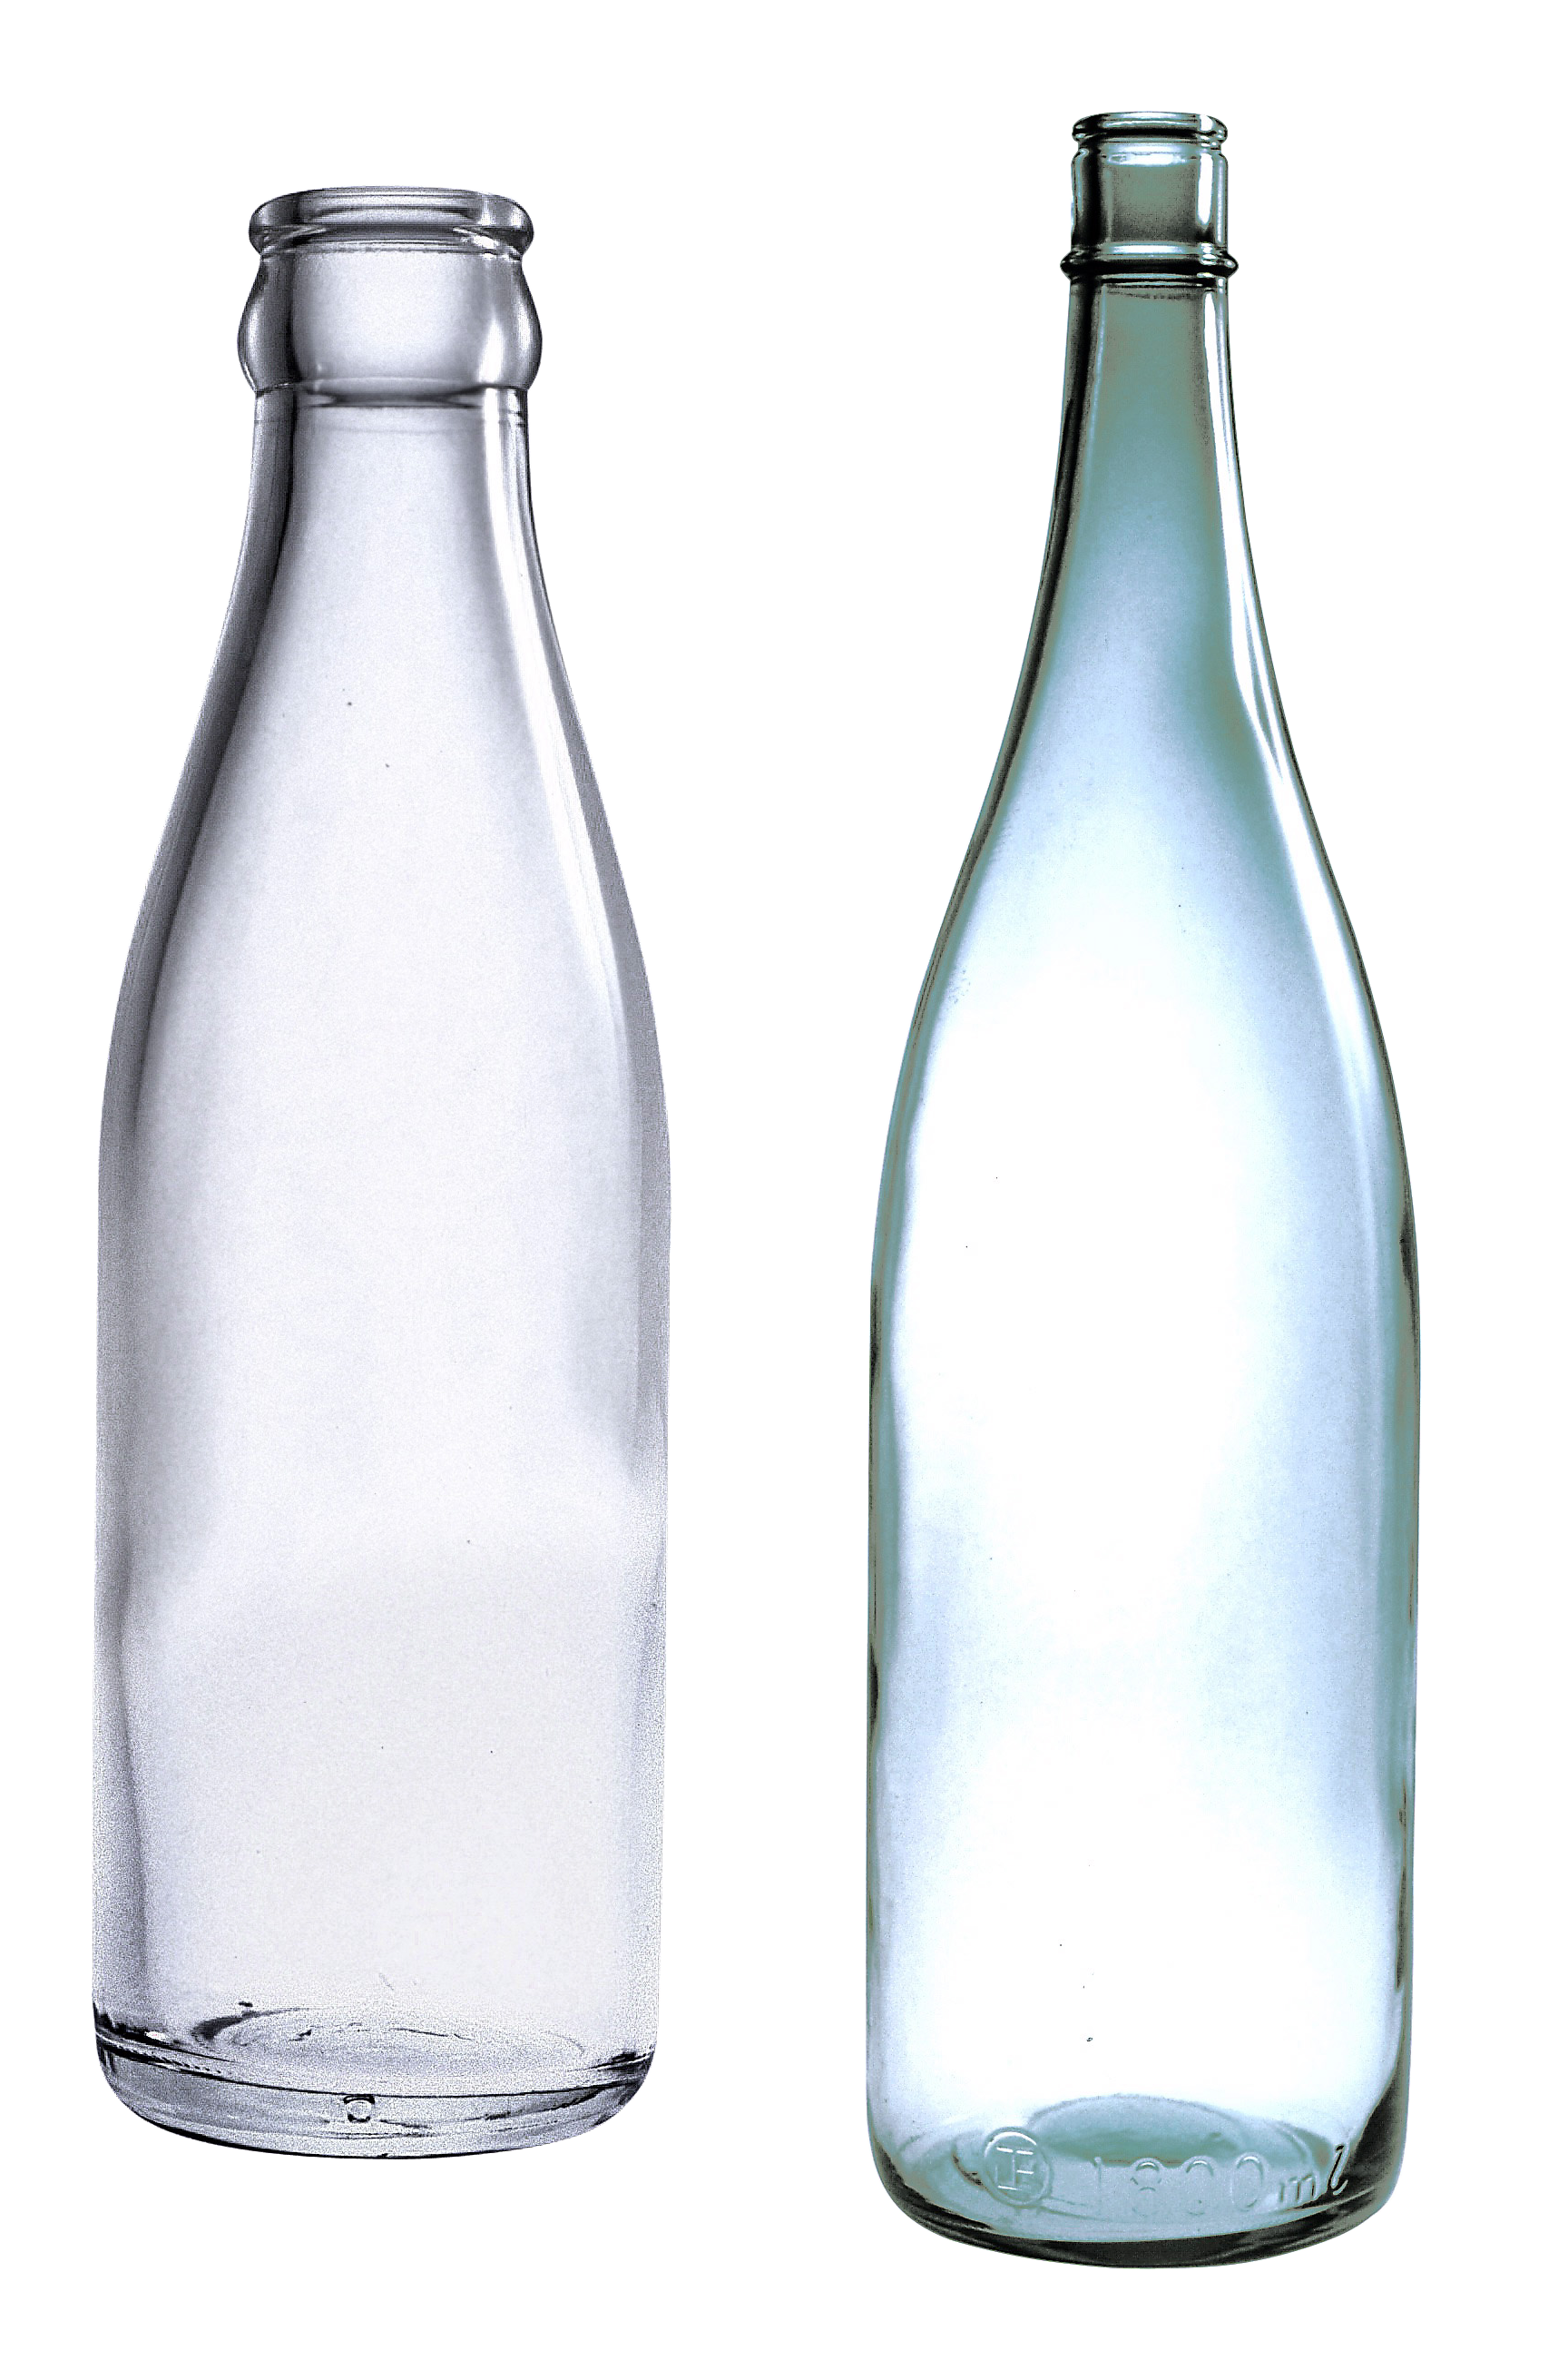 empty glass bottles PNG image - Bottle HD PNG